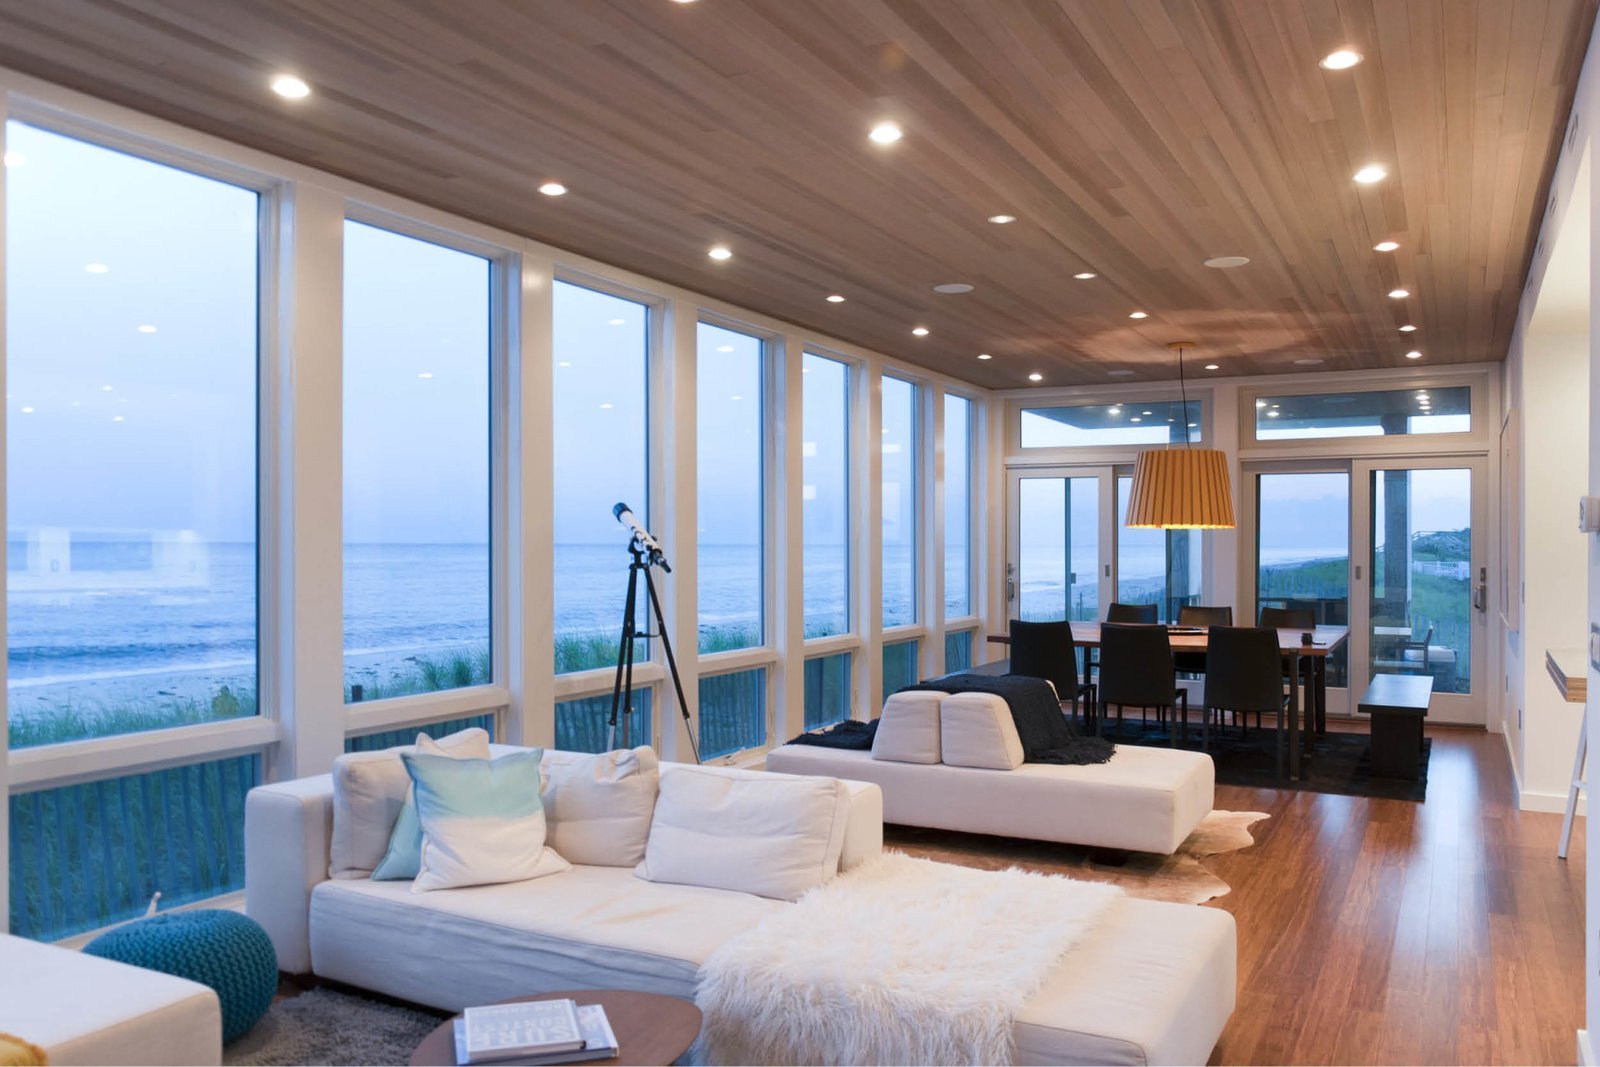 Sofa, Ceiling Lighting, Medium Hardwood Floor, and Outdoor Communal space with expansive views of the ocean  Dune Road Beach House by Resolution: 4 Architecture